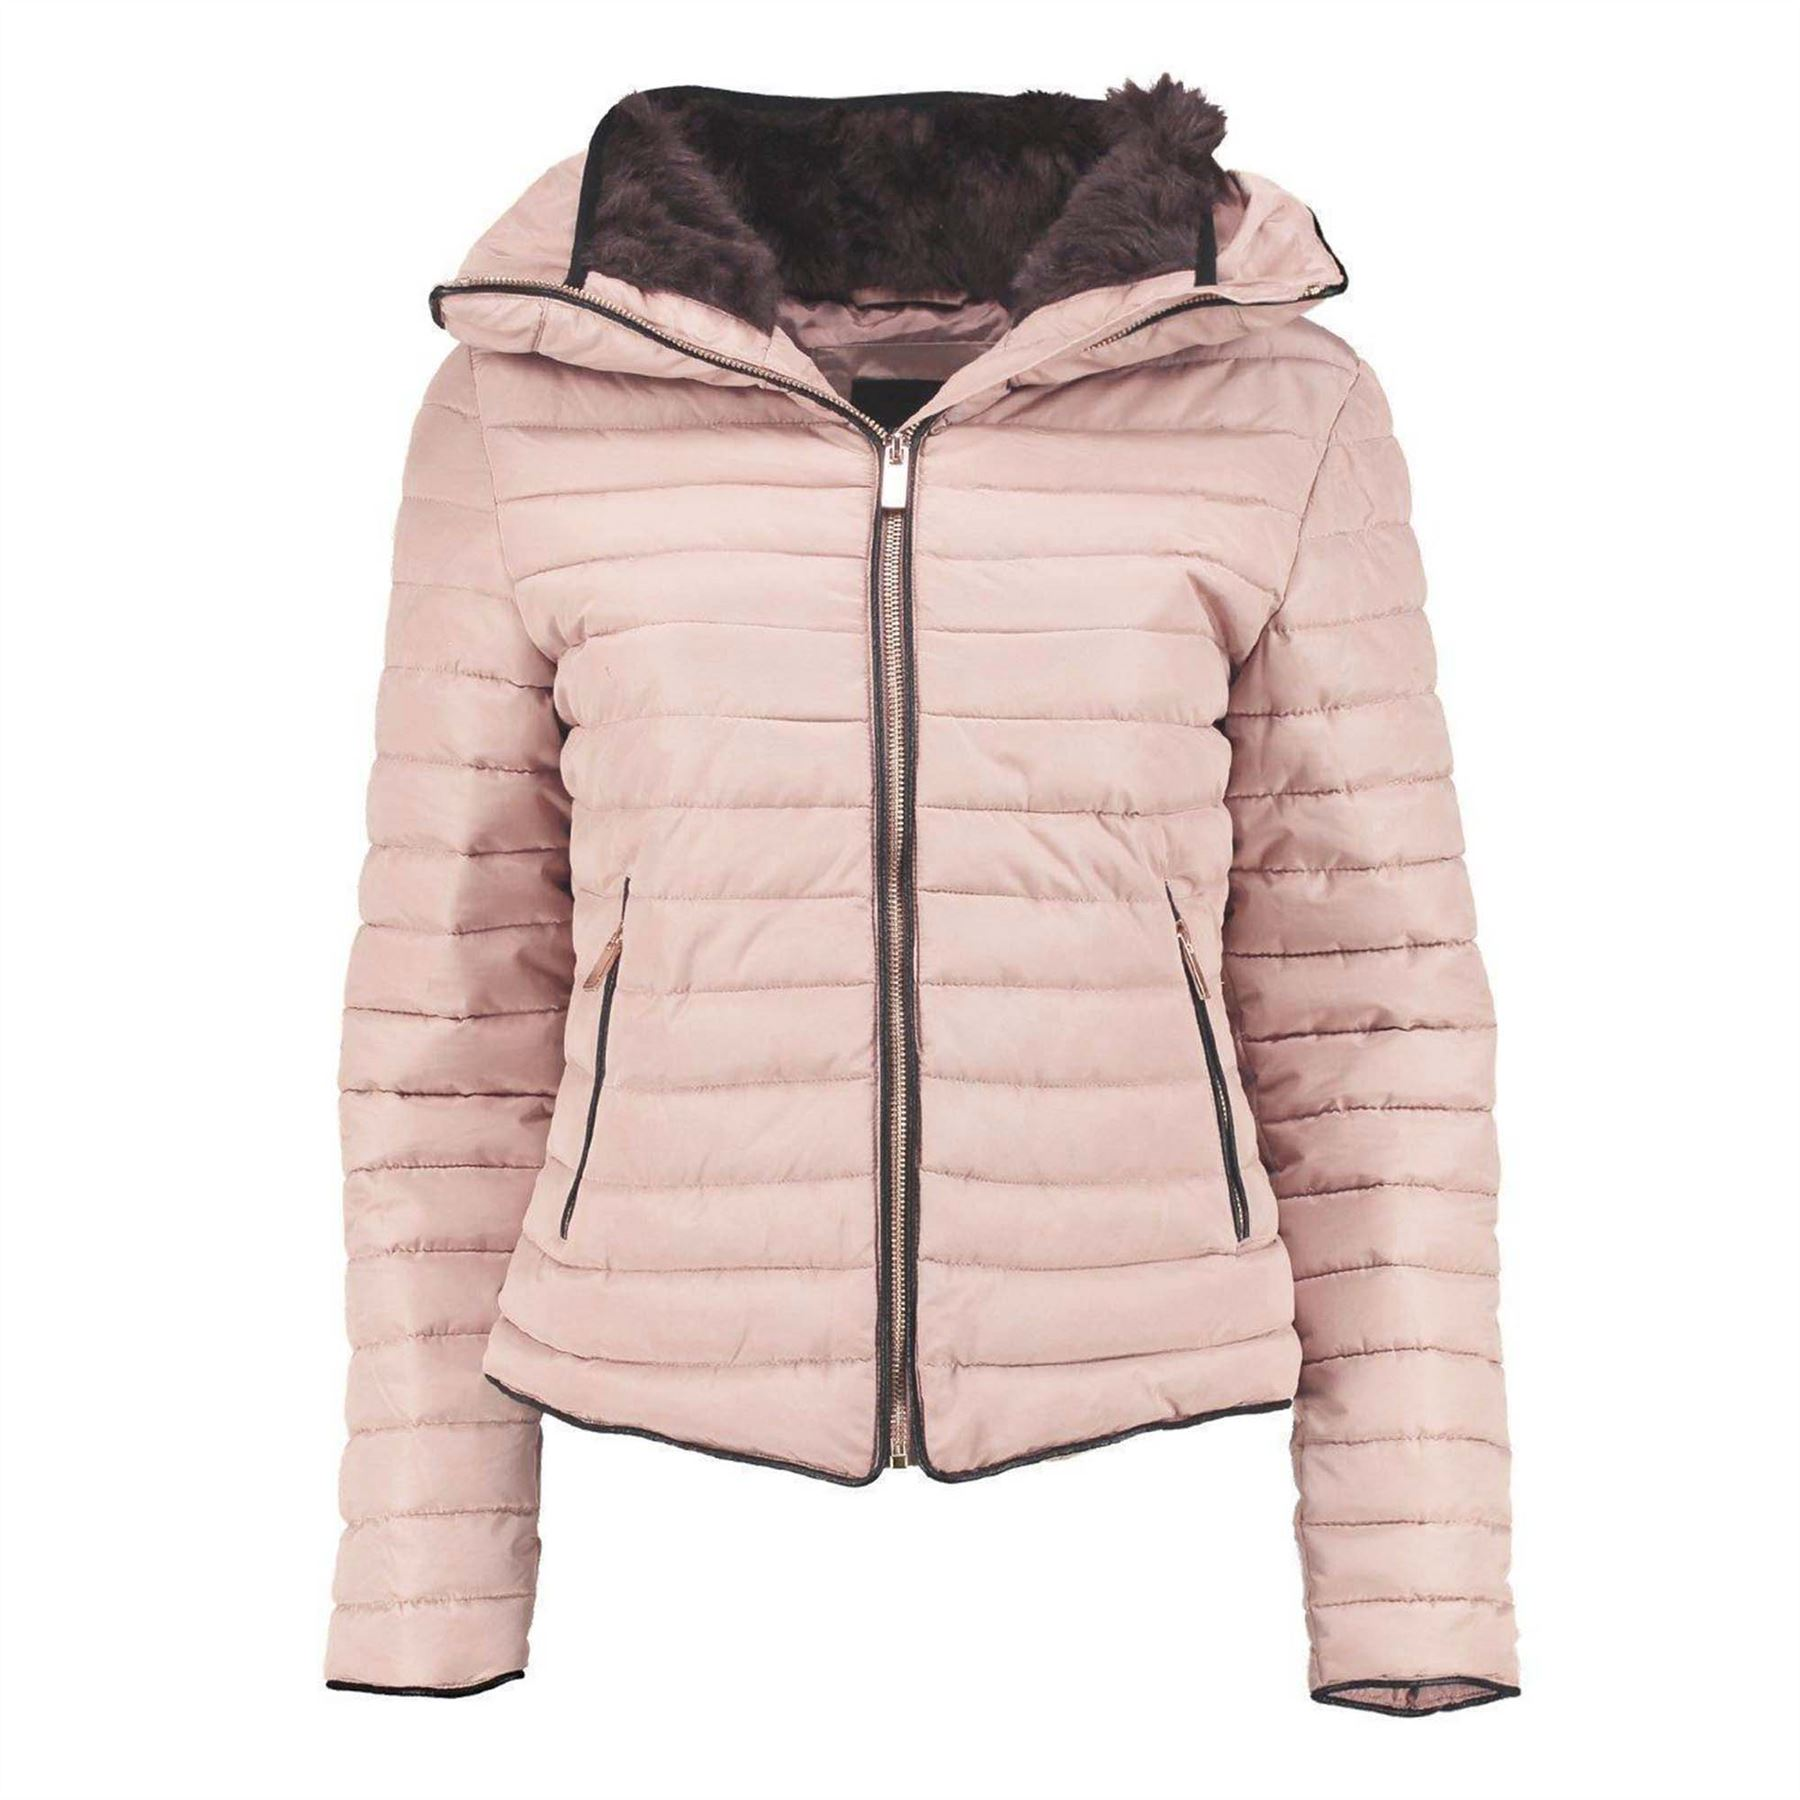 Ladies Kids Bubble Fur Collar Quilted Padded Girls Thick Warm Coat ... : quilted puffer coat - Adamdwight.com